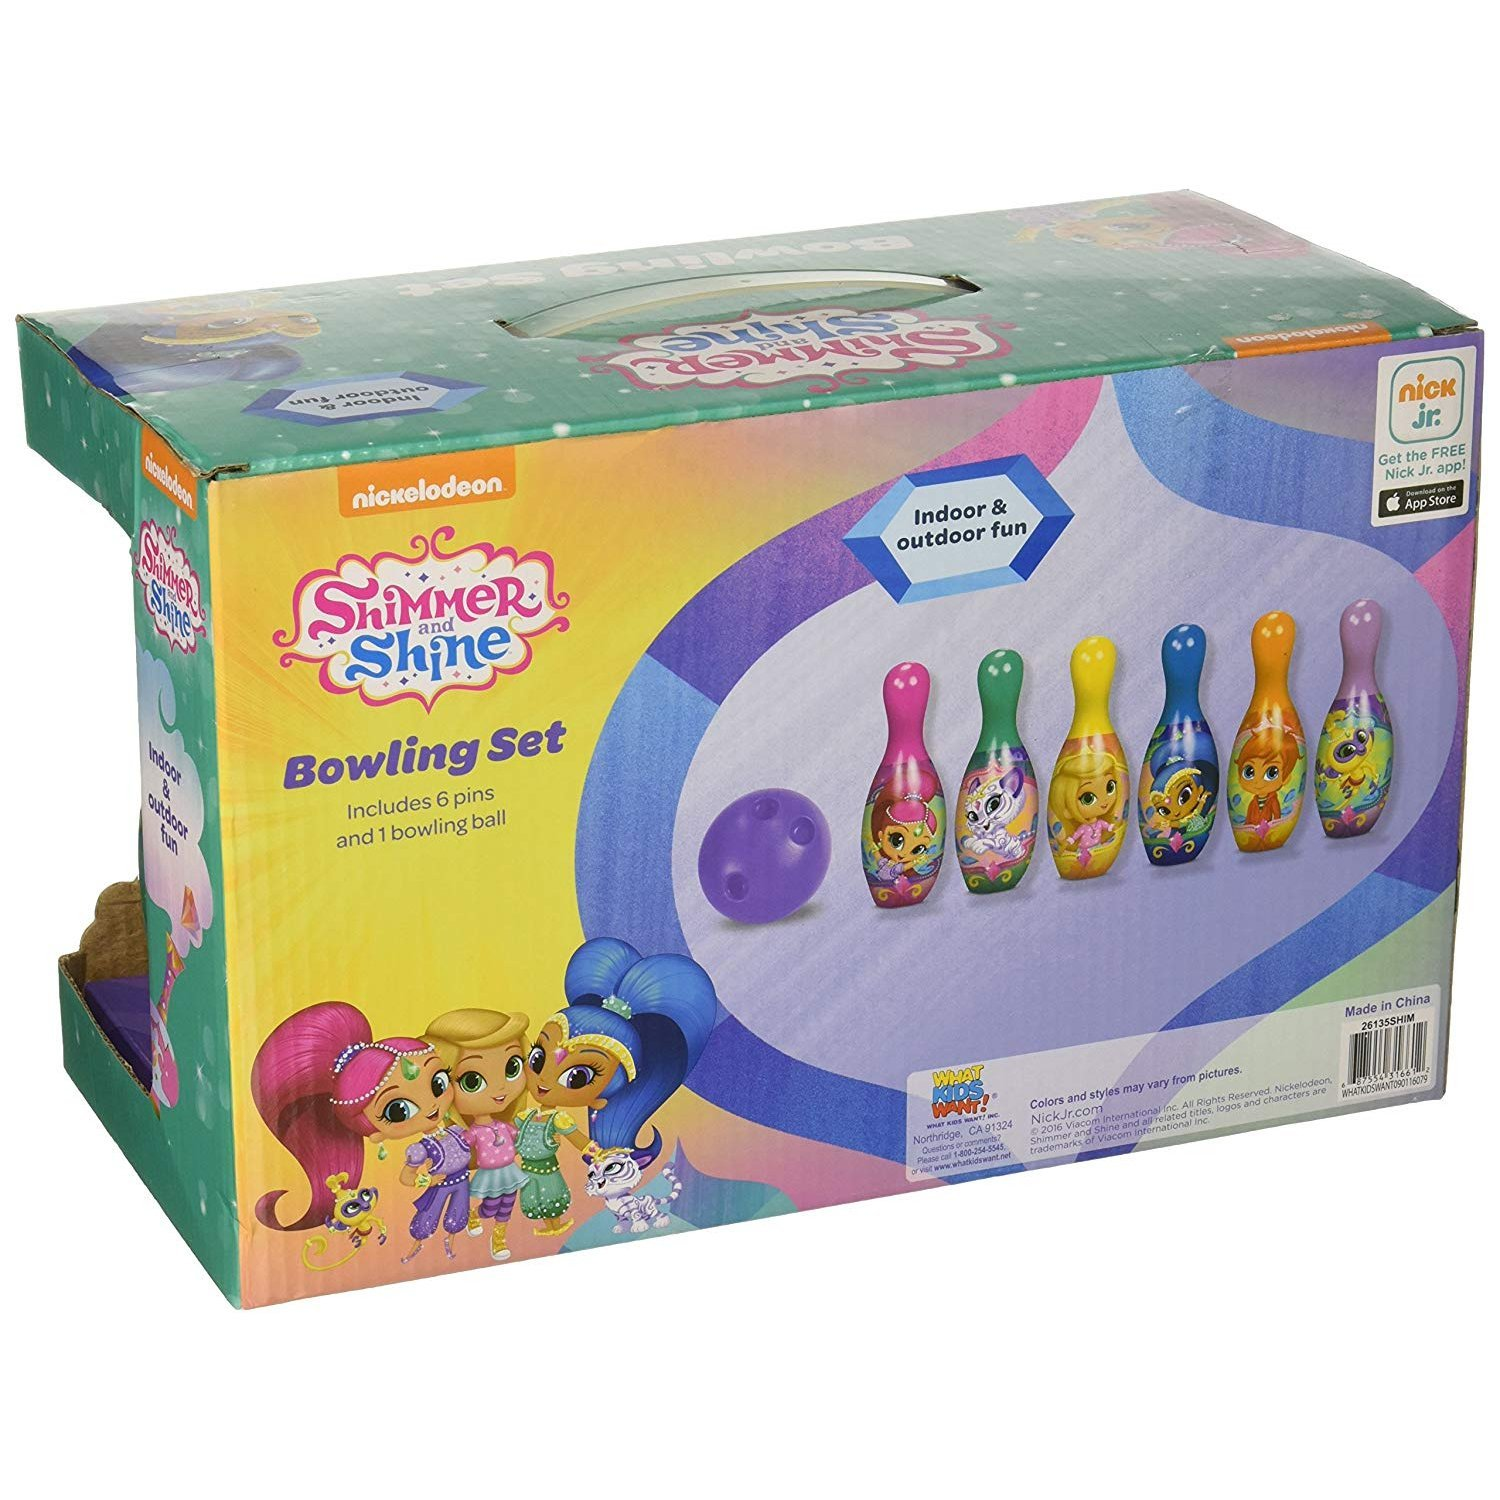 Nickelodeon Shimmer and Shine Bowling Pin Party Indoor Outdoor Family Play Set